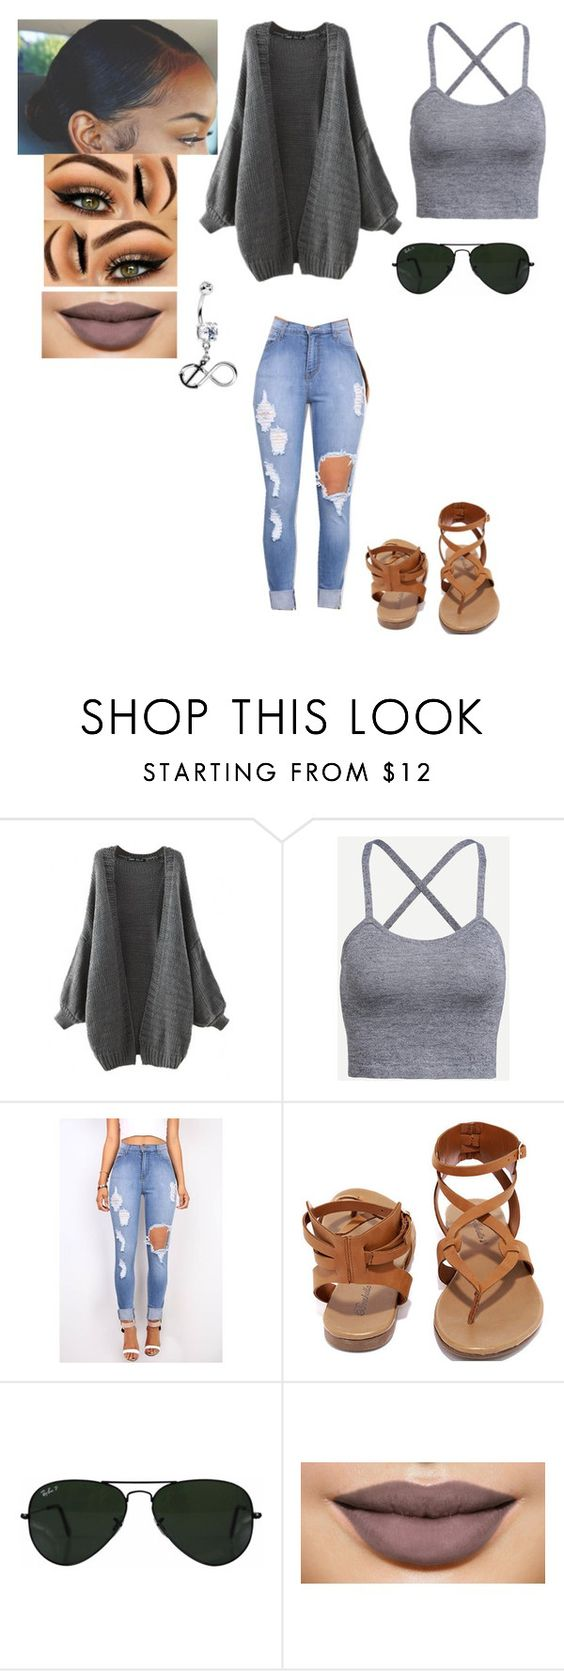 """Mall"" by yogurl-riyaa ❤ liked on Polyvore featuring Breckelle's and Ray-Ban"